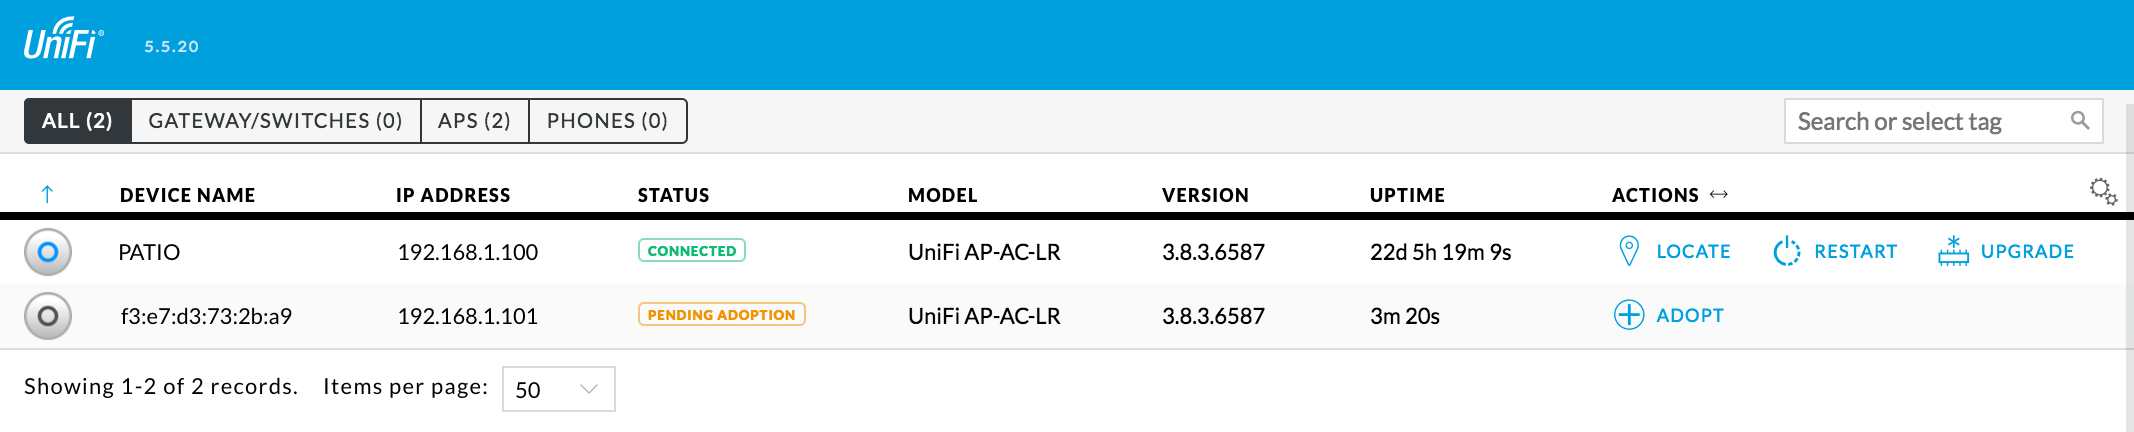 Automatic Controller Assignment for Unifi DHCP Option 43 on